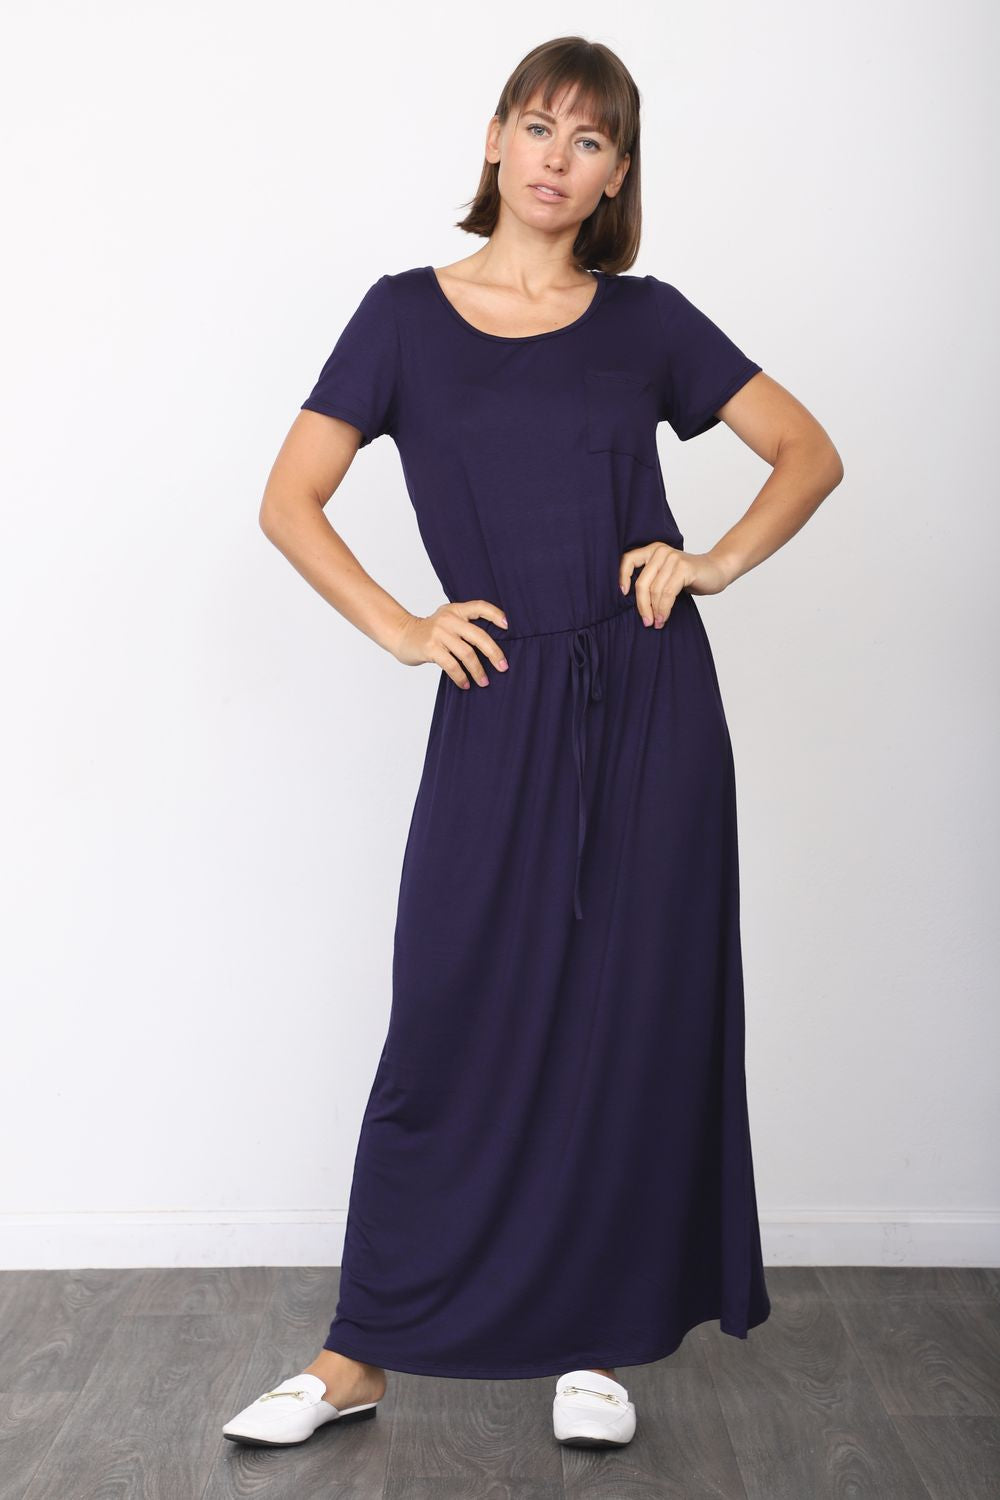 Solid Navy Short Sleeve Maxi Dress with Side Slit